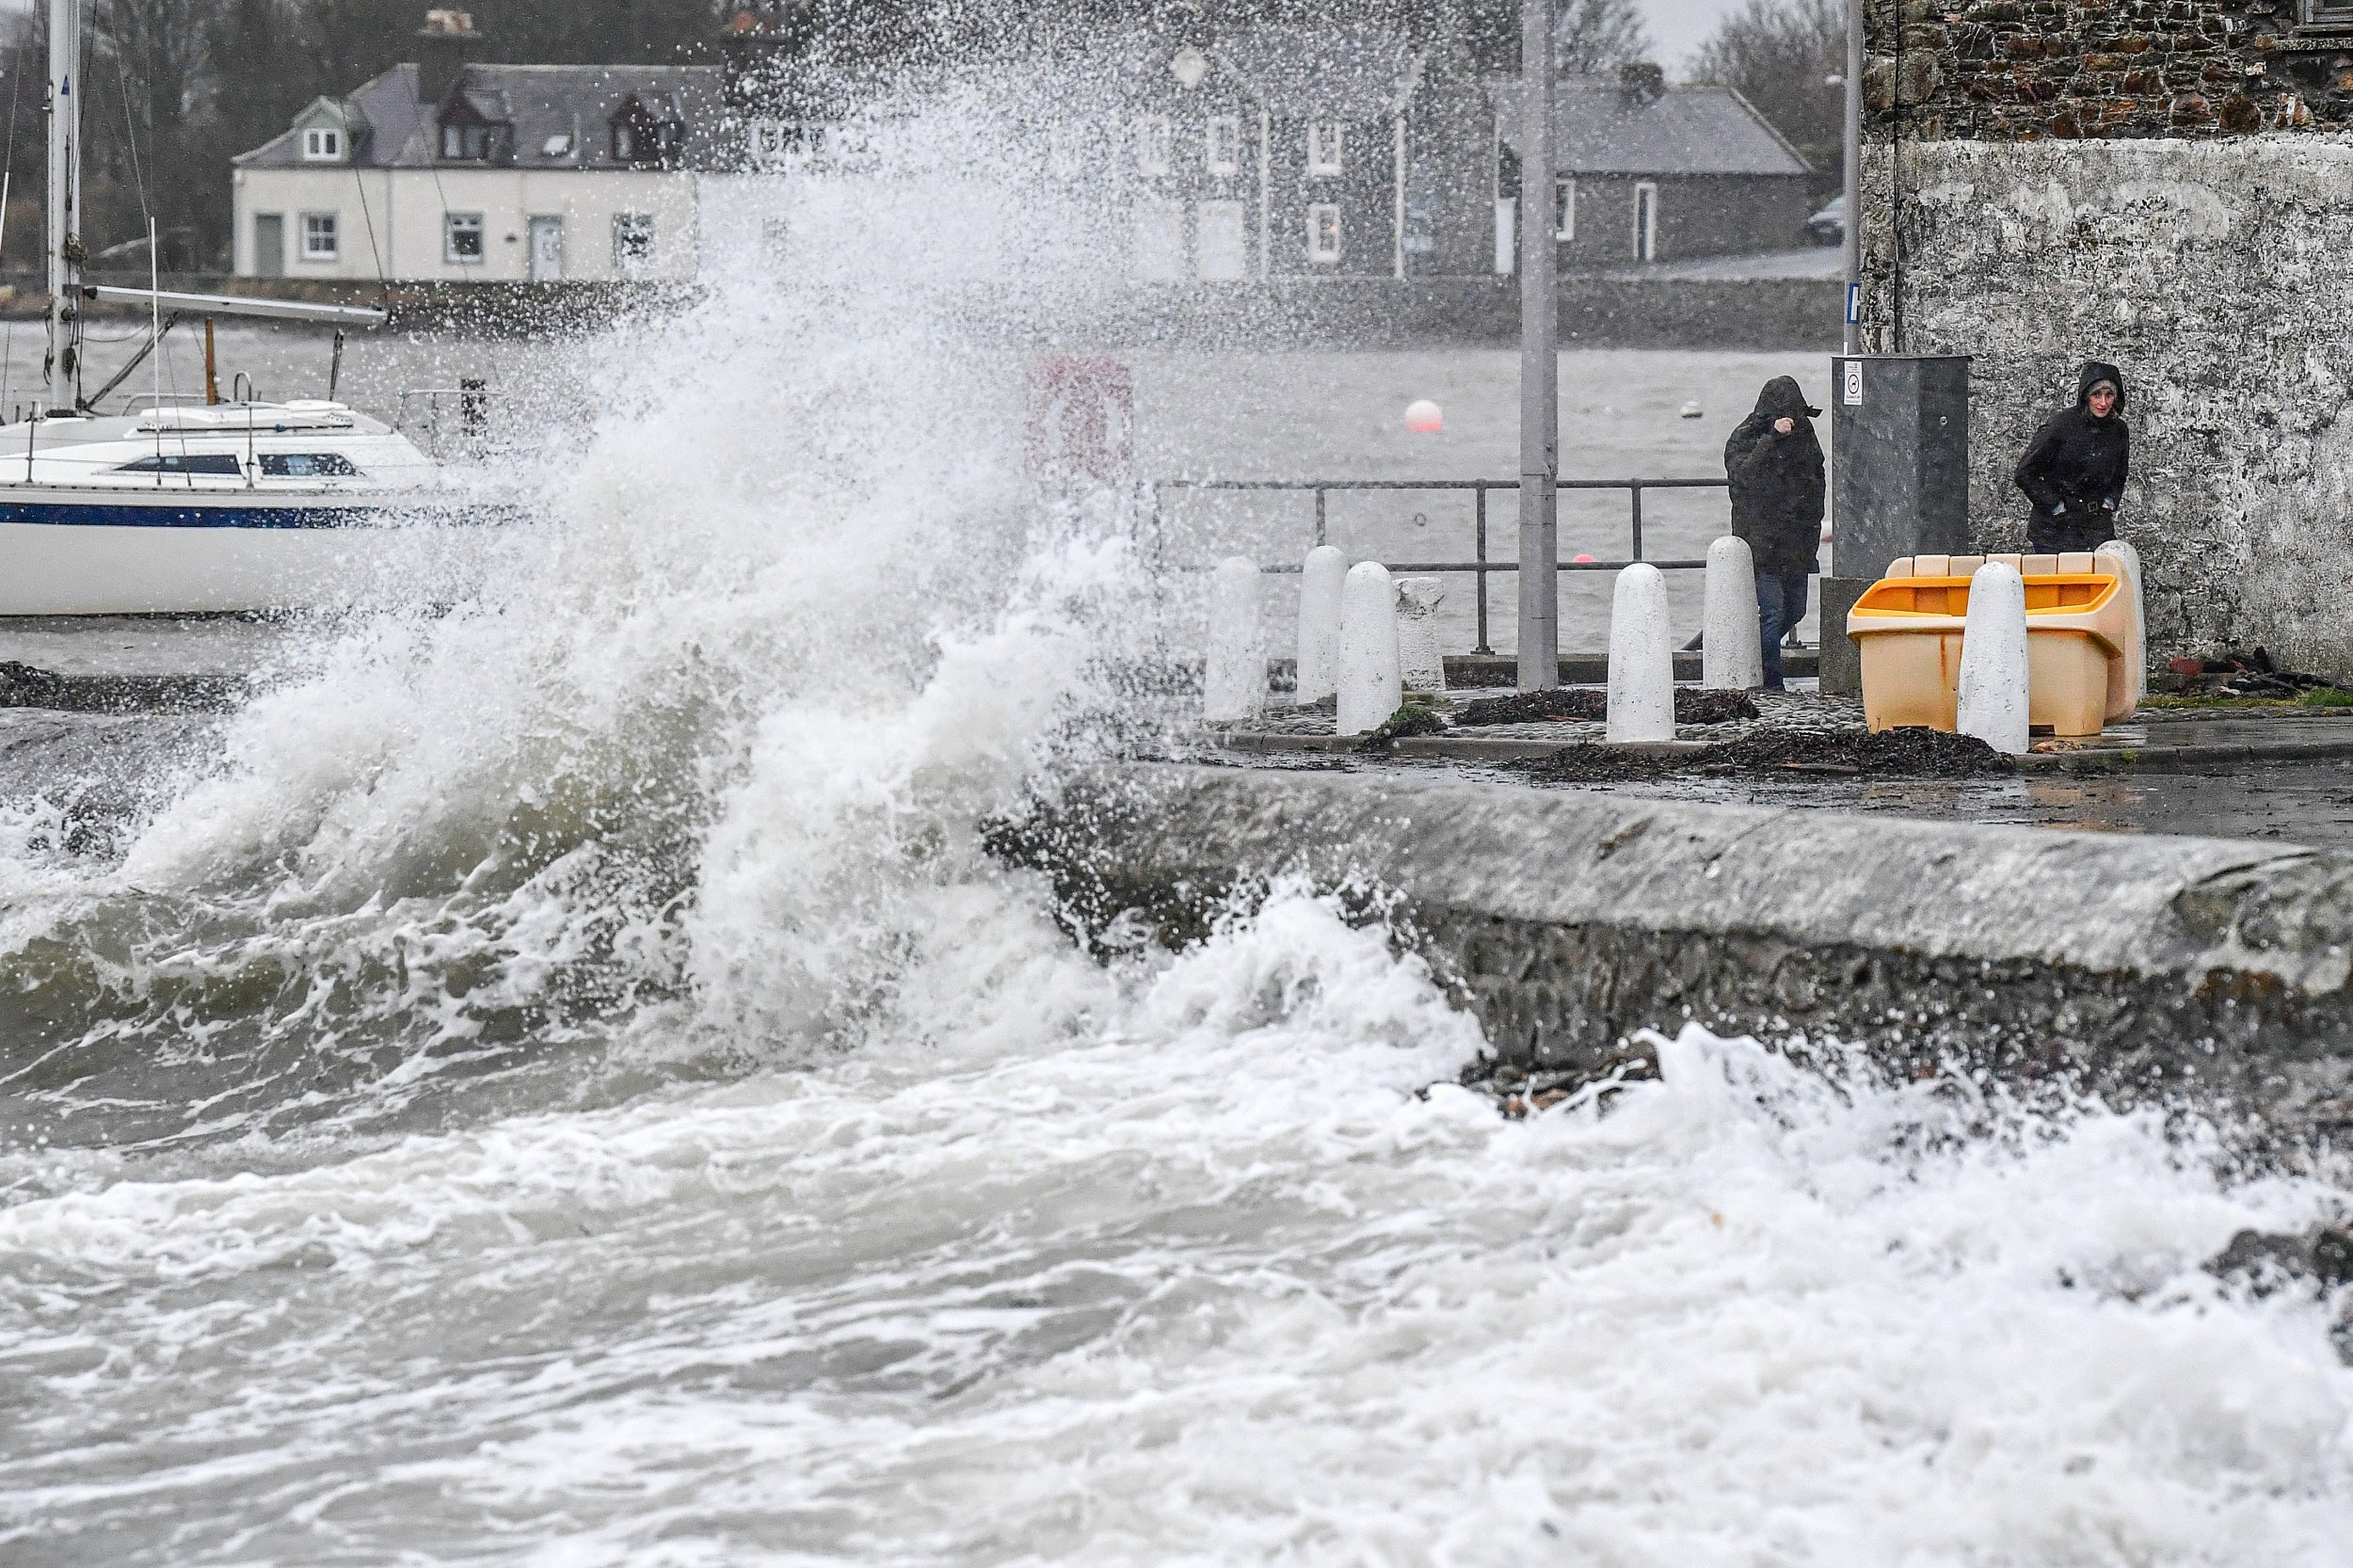 Travel chaos on trains, boats and planes continues amid Storm Dennis aftermath